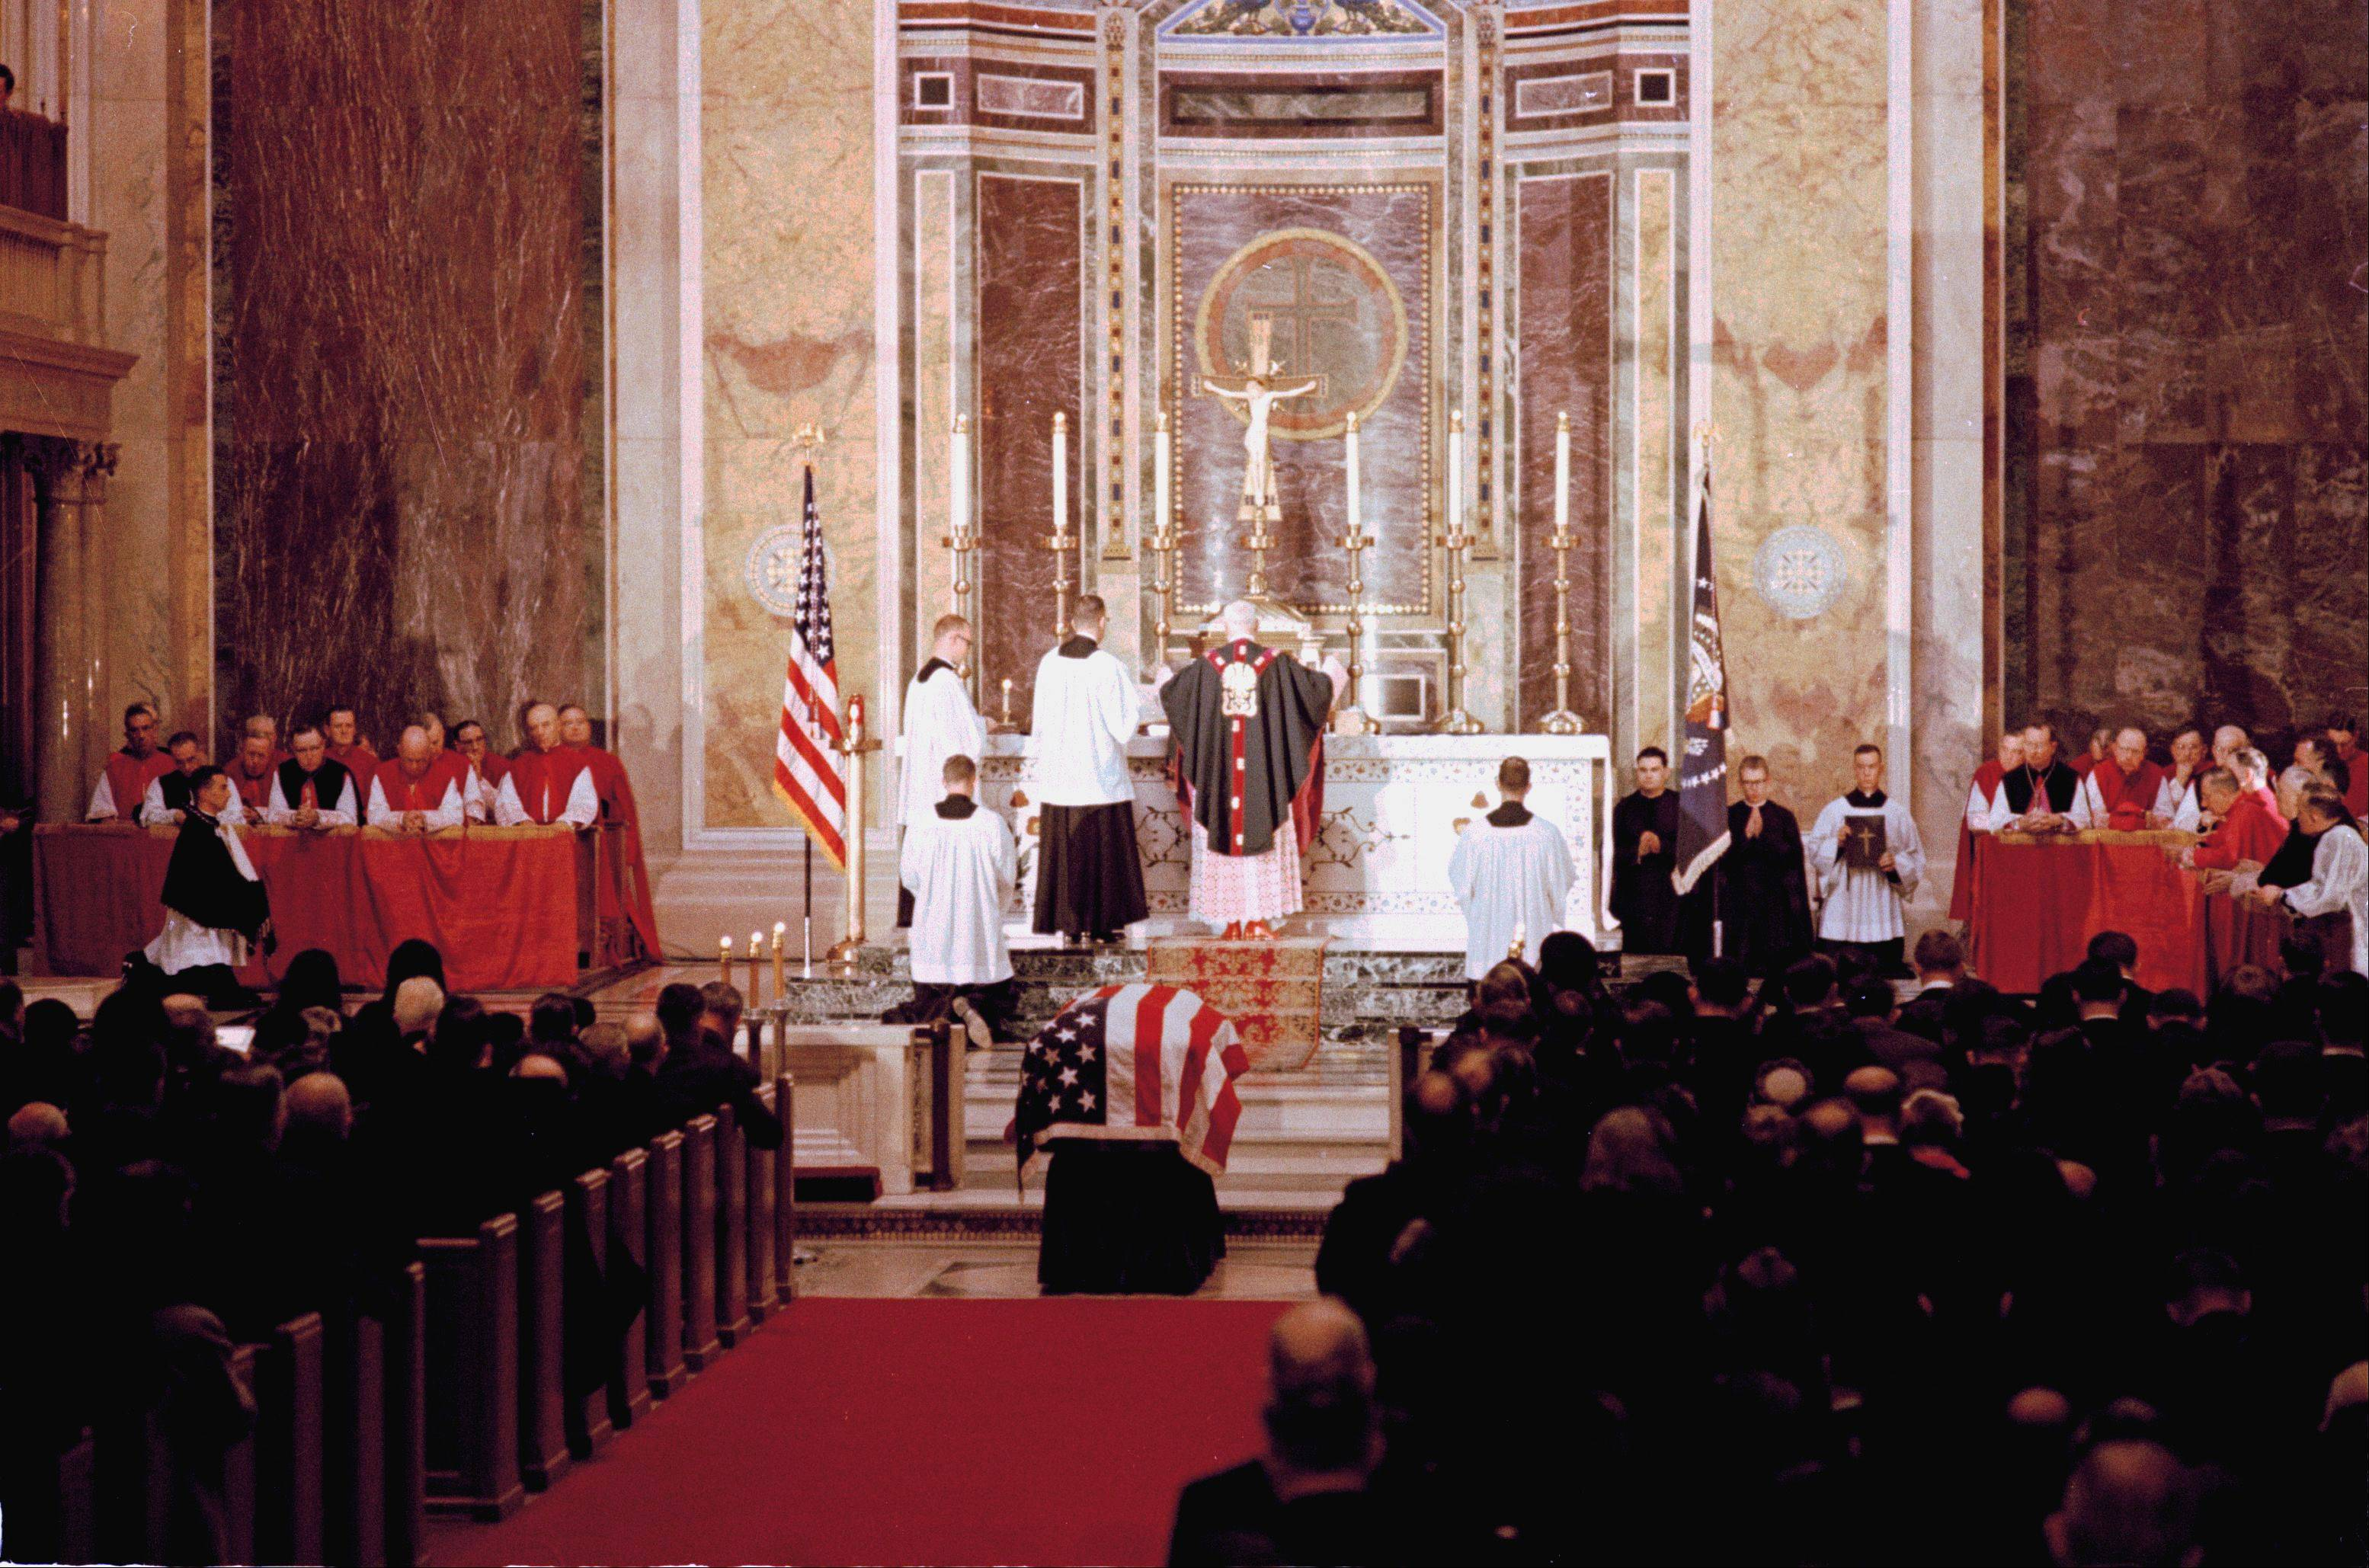 Kennedy's presidency a milestone for suburban Catholics